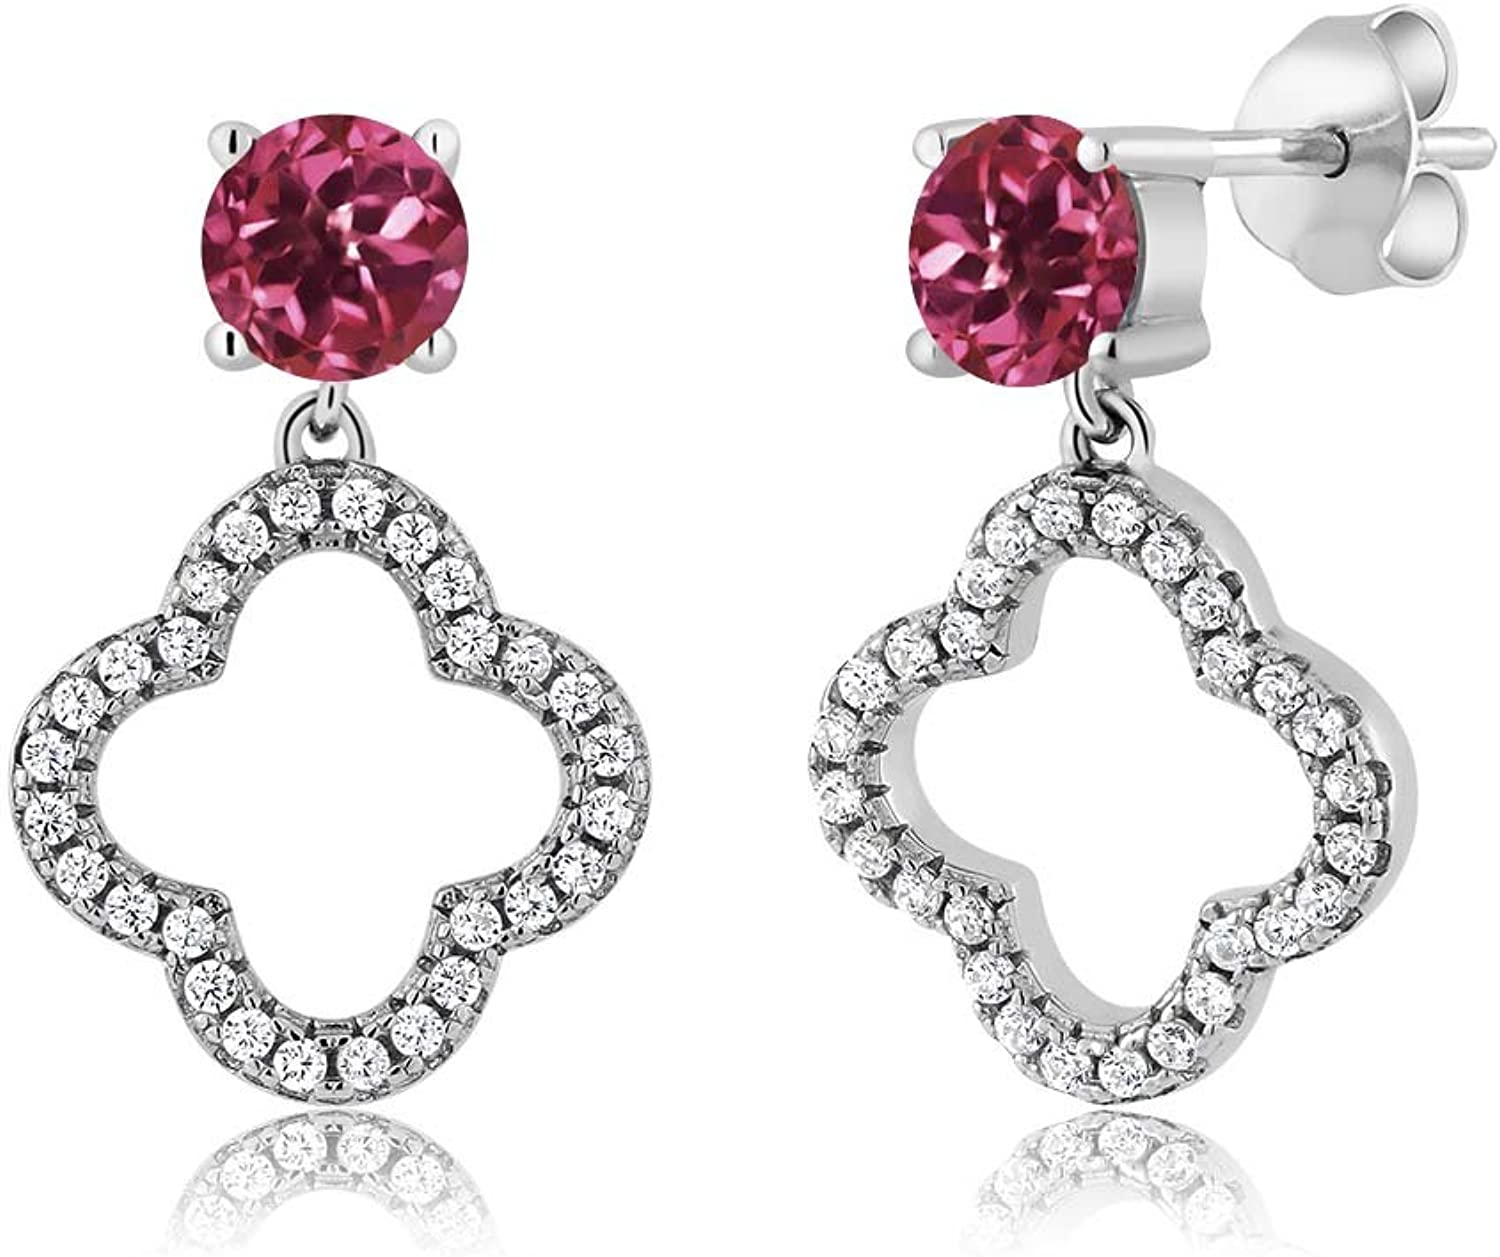 1.67 Ct Round Pink Tourmaline 925 Sterling Silver Dangle Earrings